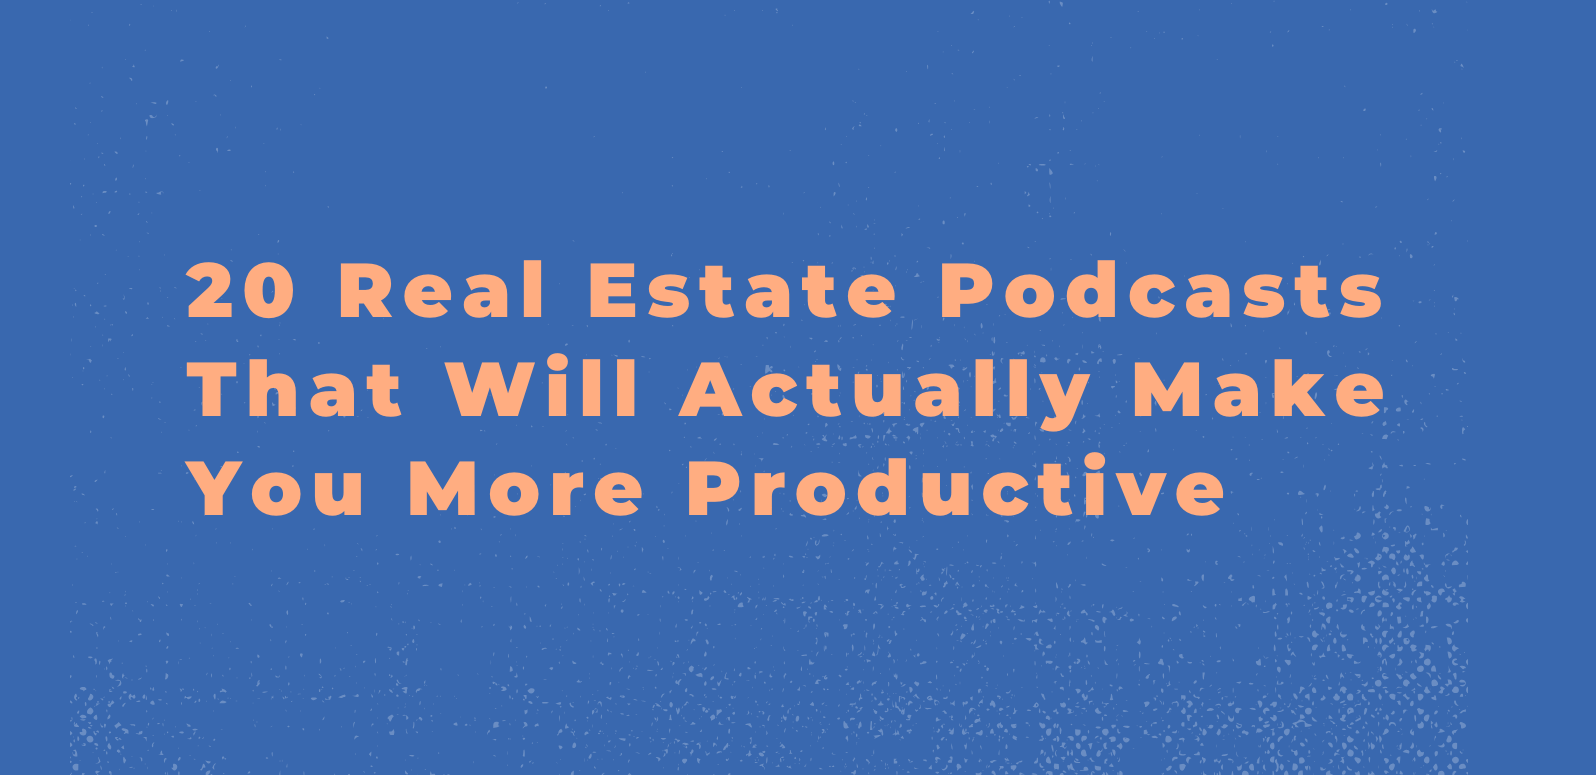 20 Real Estate Podcasts That Will Actually Make You More Productive Follow Up Boss